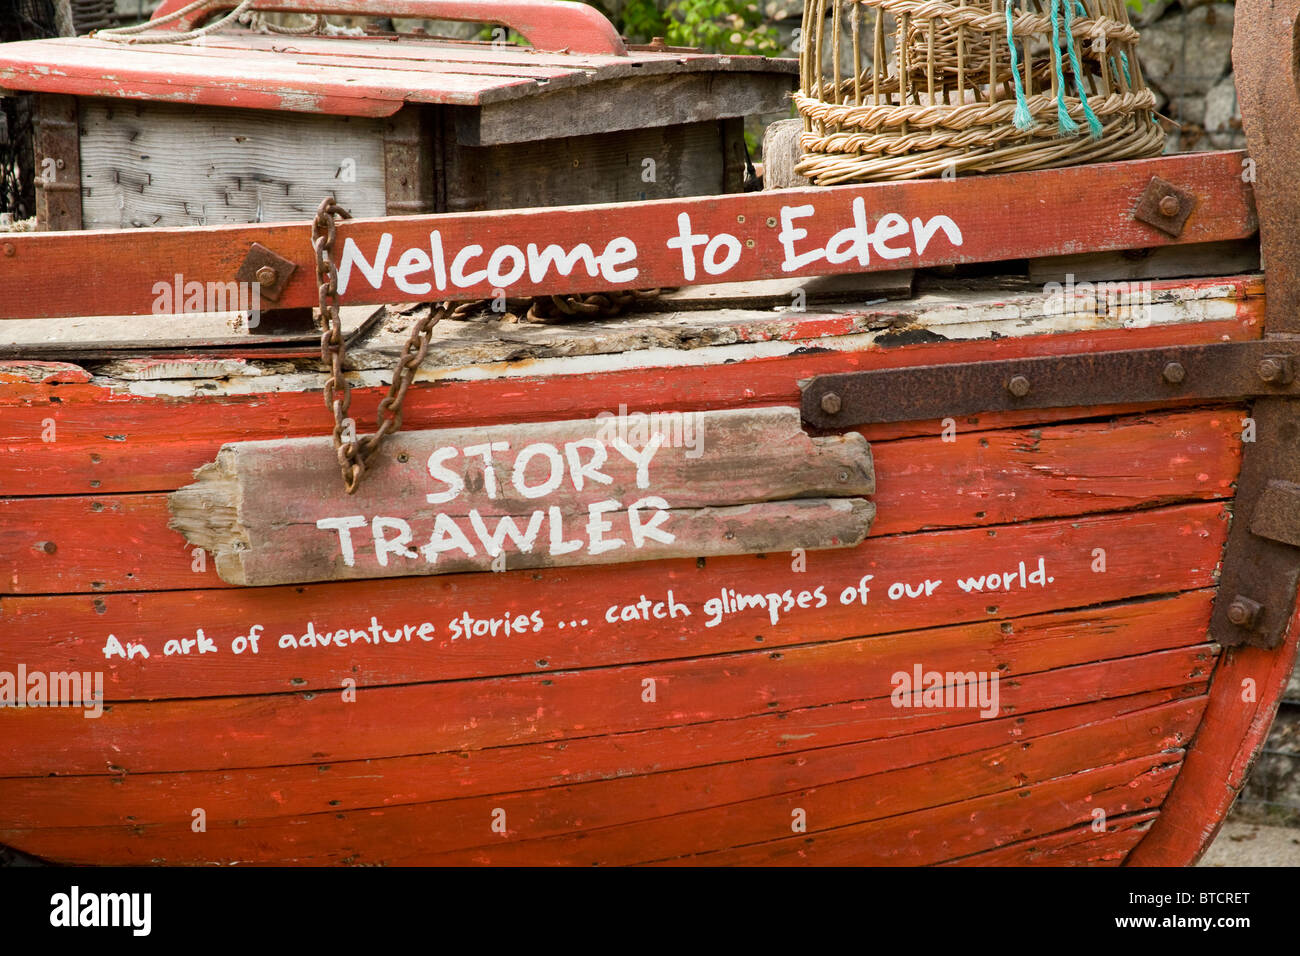 Wooden boat Sculpture Piece of Art Eden Project United Kingdom Stock Photo